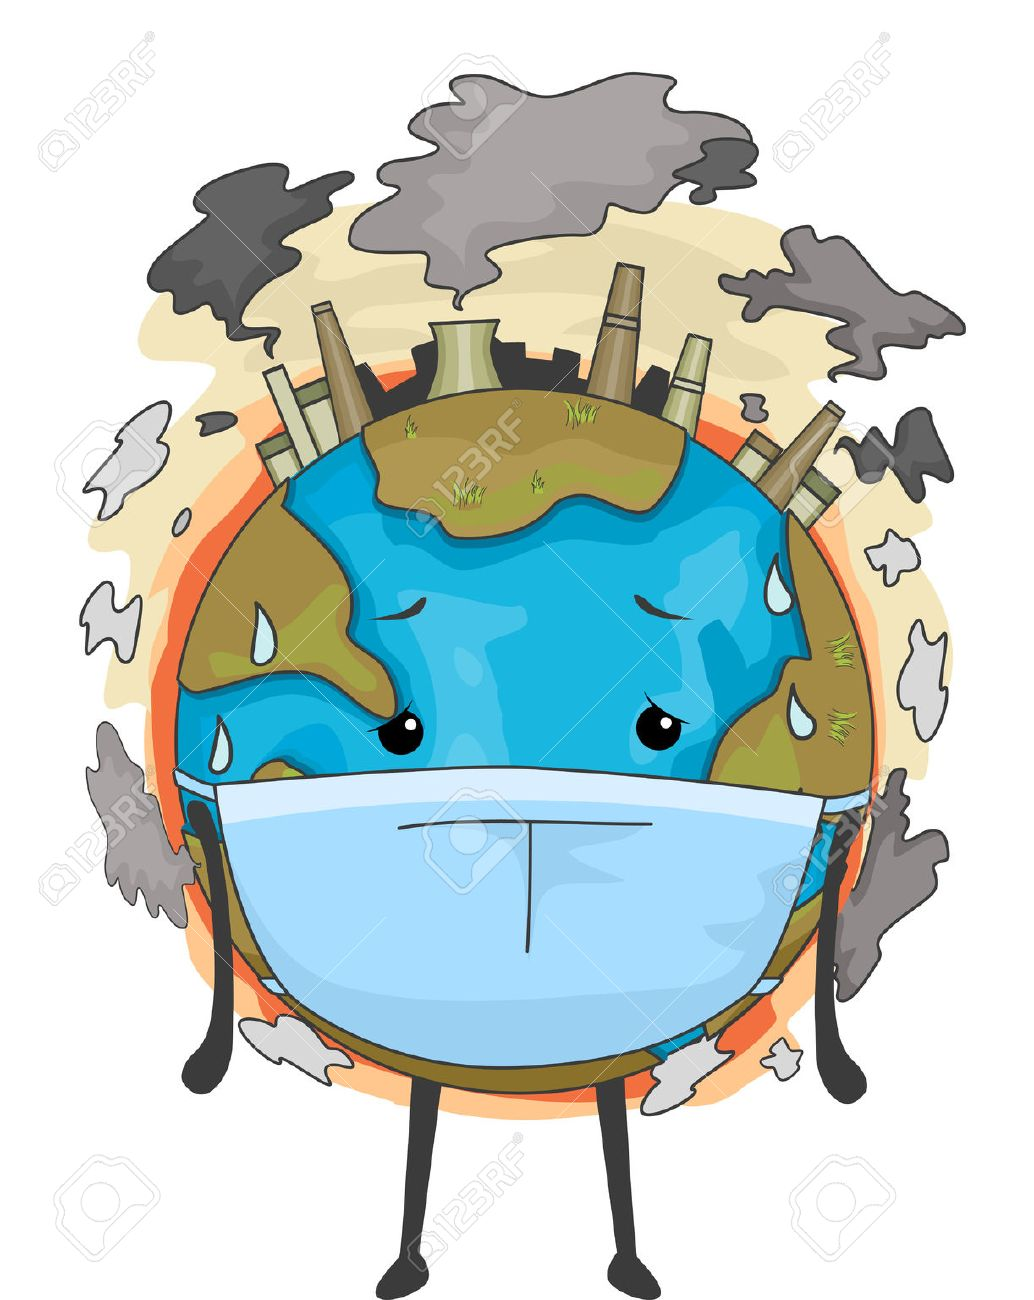 Image result for a cartoon picture of the world in smog